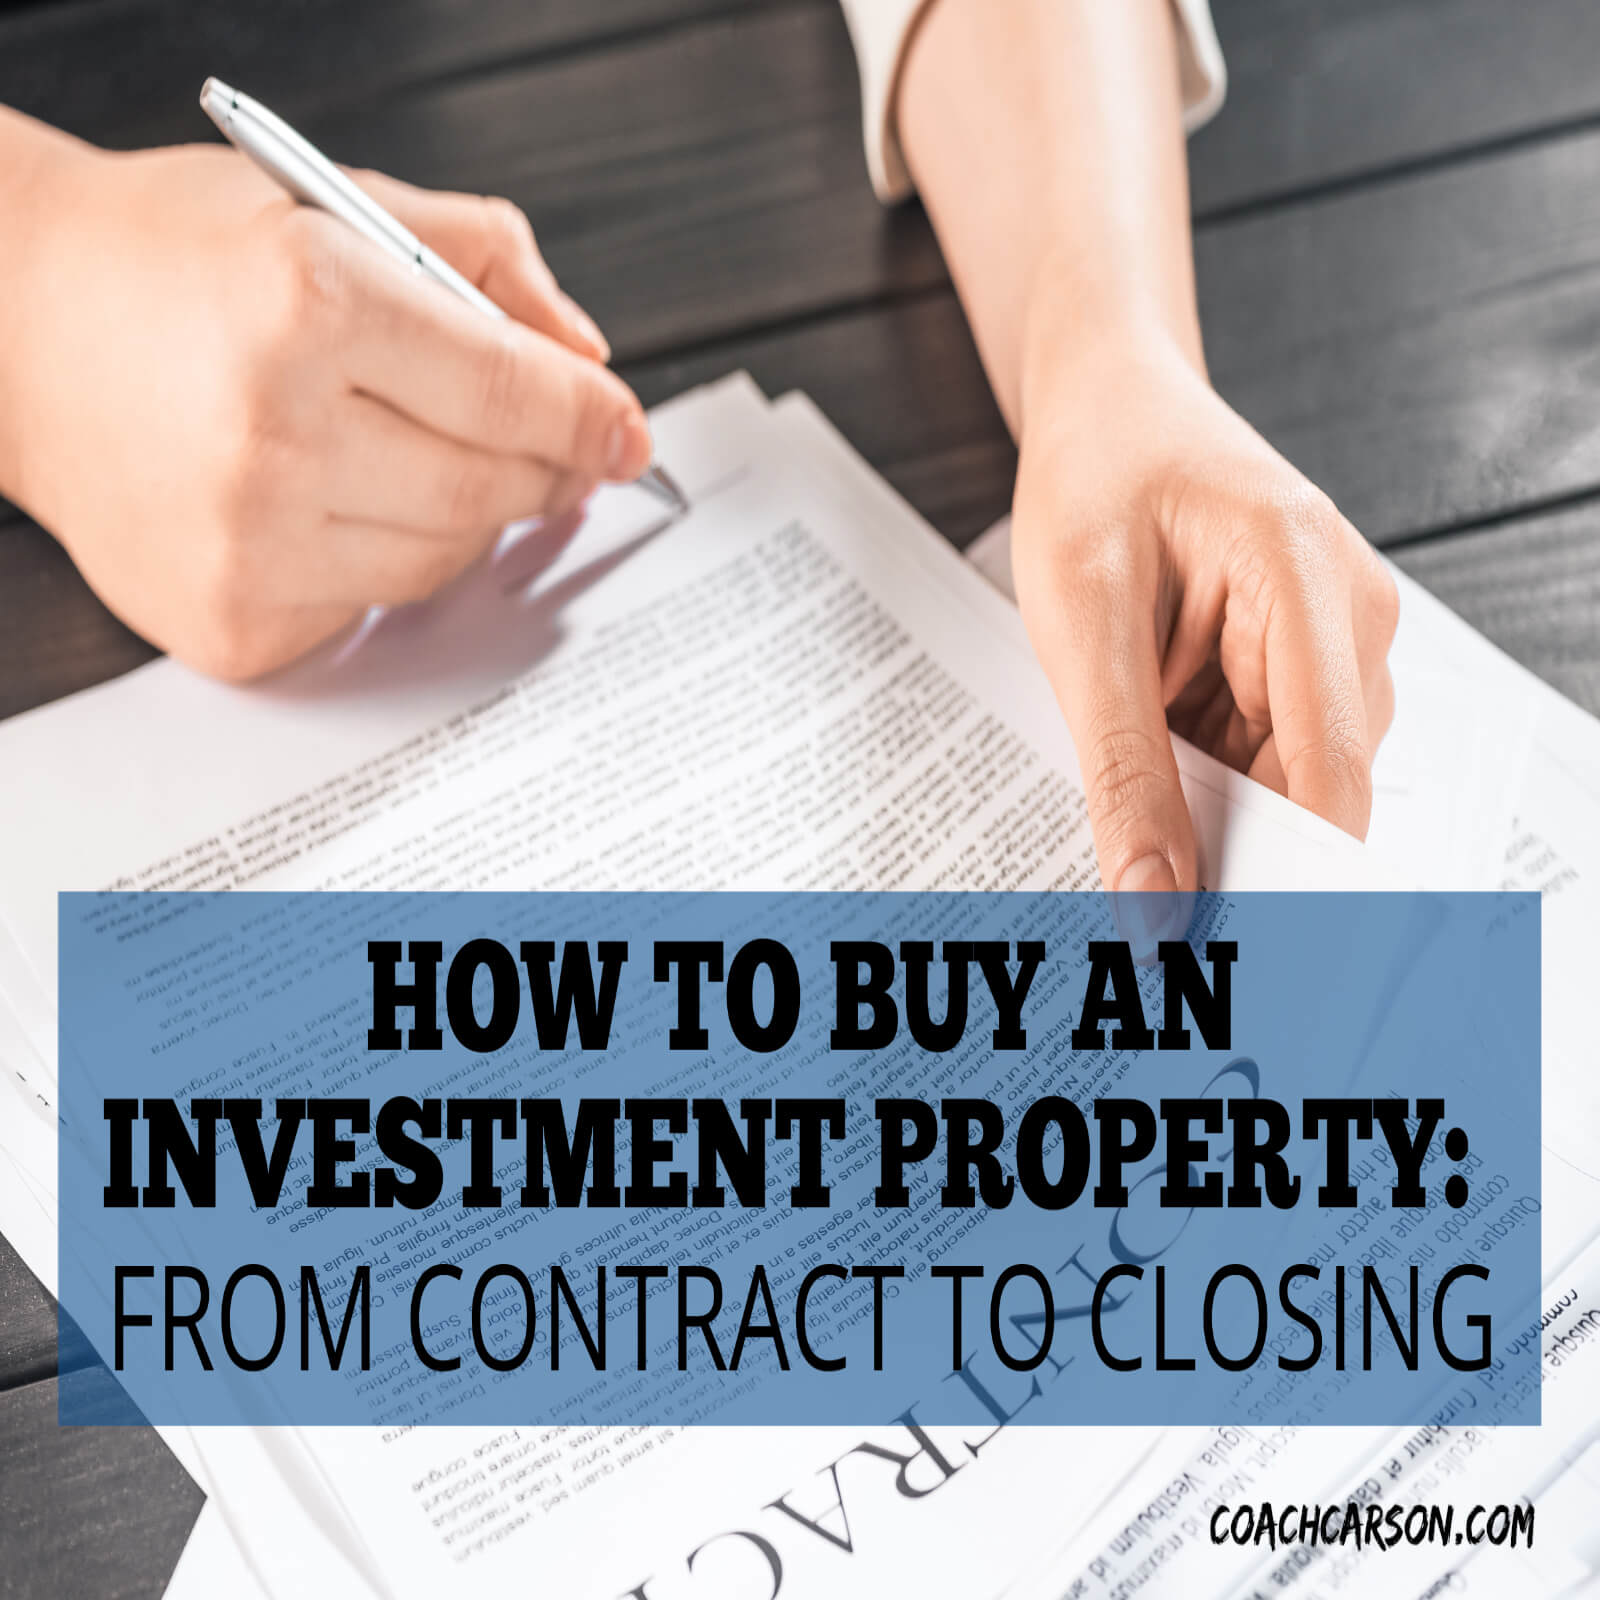 How to Buy an Investment Property - From Contract to Closing - Coach